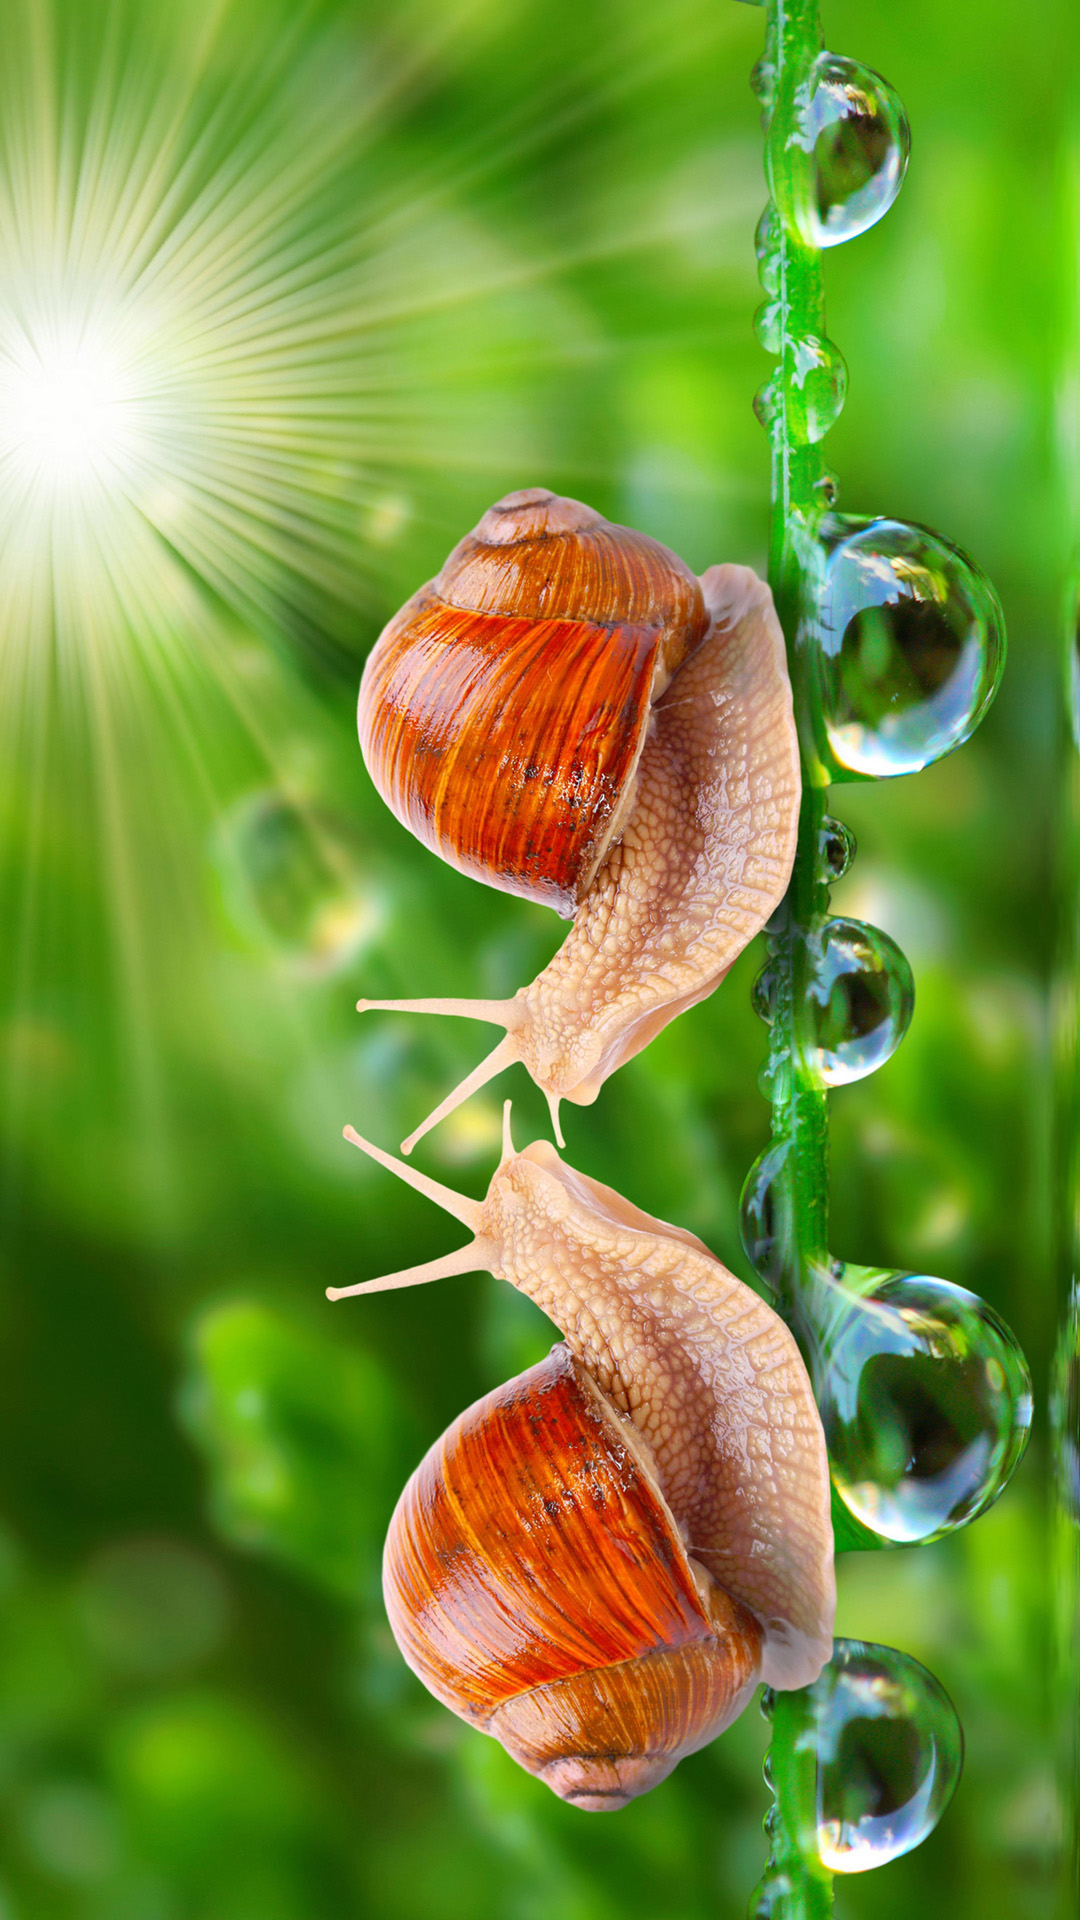 hd loving snail android wallpaper - android hd wallpapers